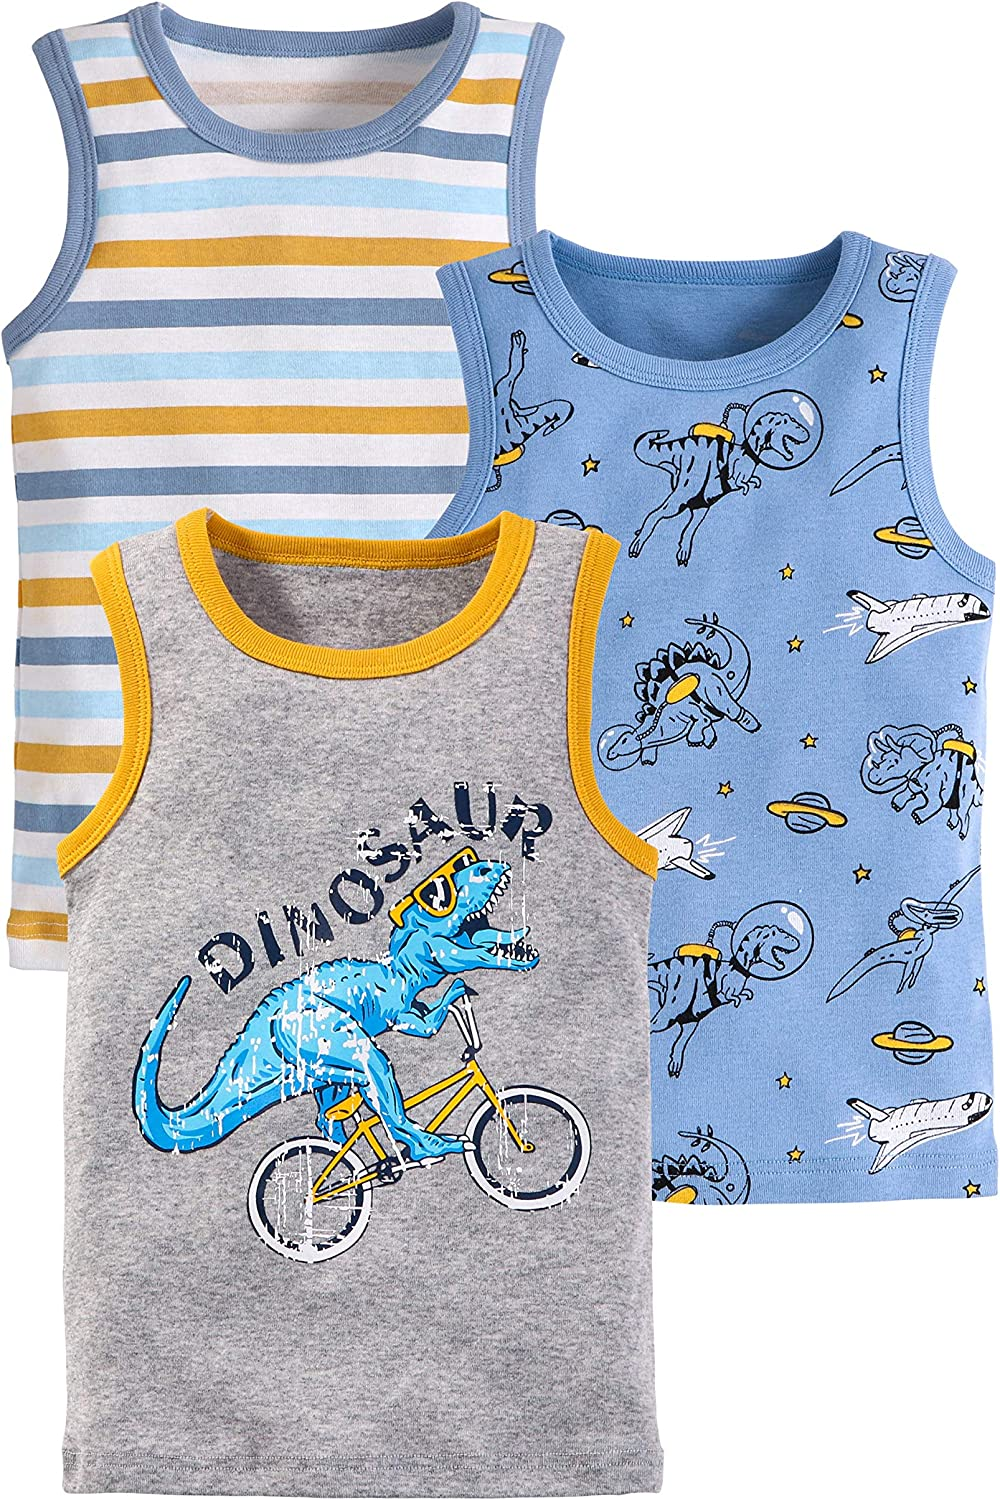 Coralup Baby Little Boys Tank Top Shirts 3 Pack Tanks Set